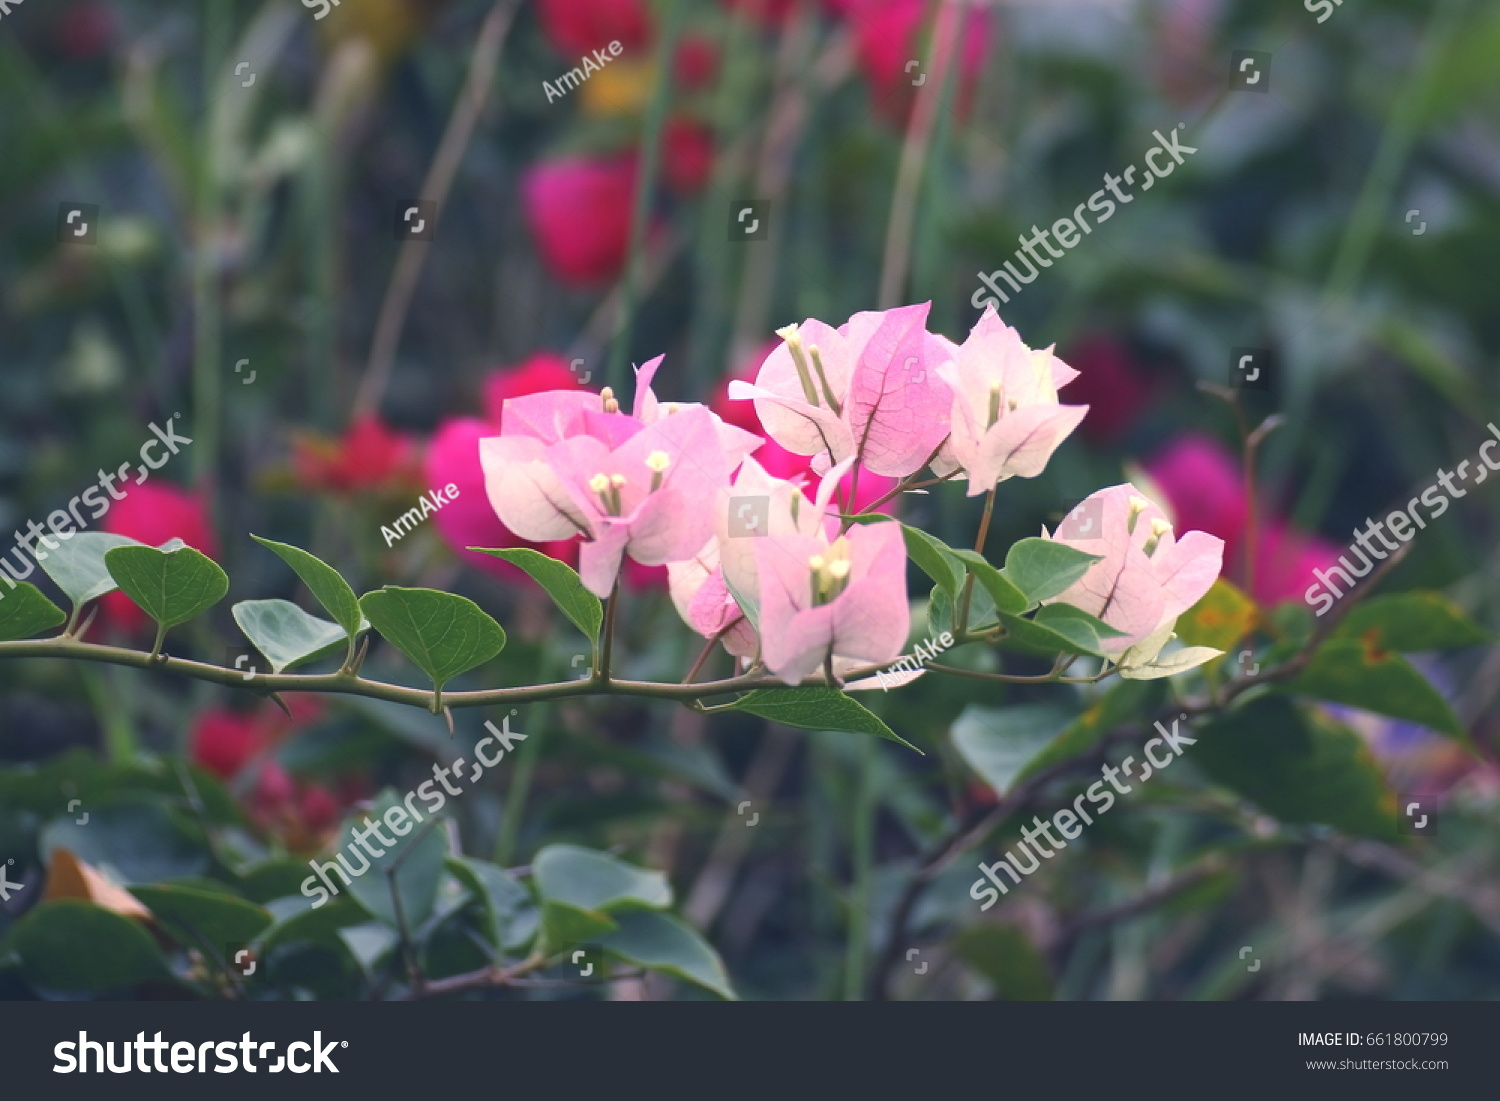 Beautiful natural flowers stock photo edit now 661800799 beautiful natural flowers izmirmasajfo